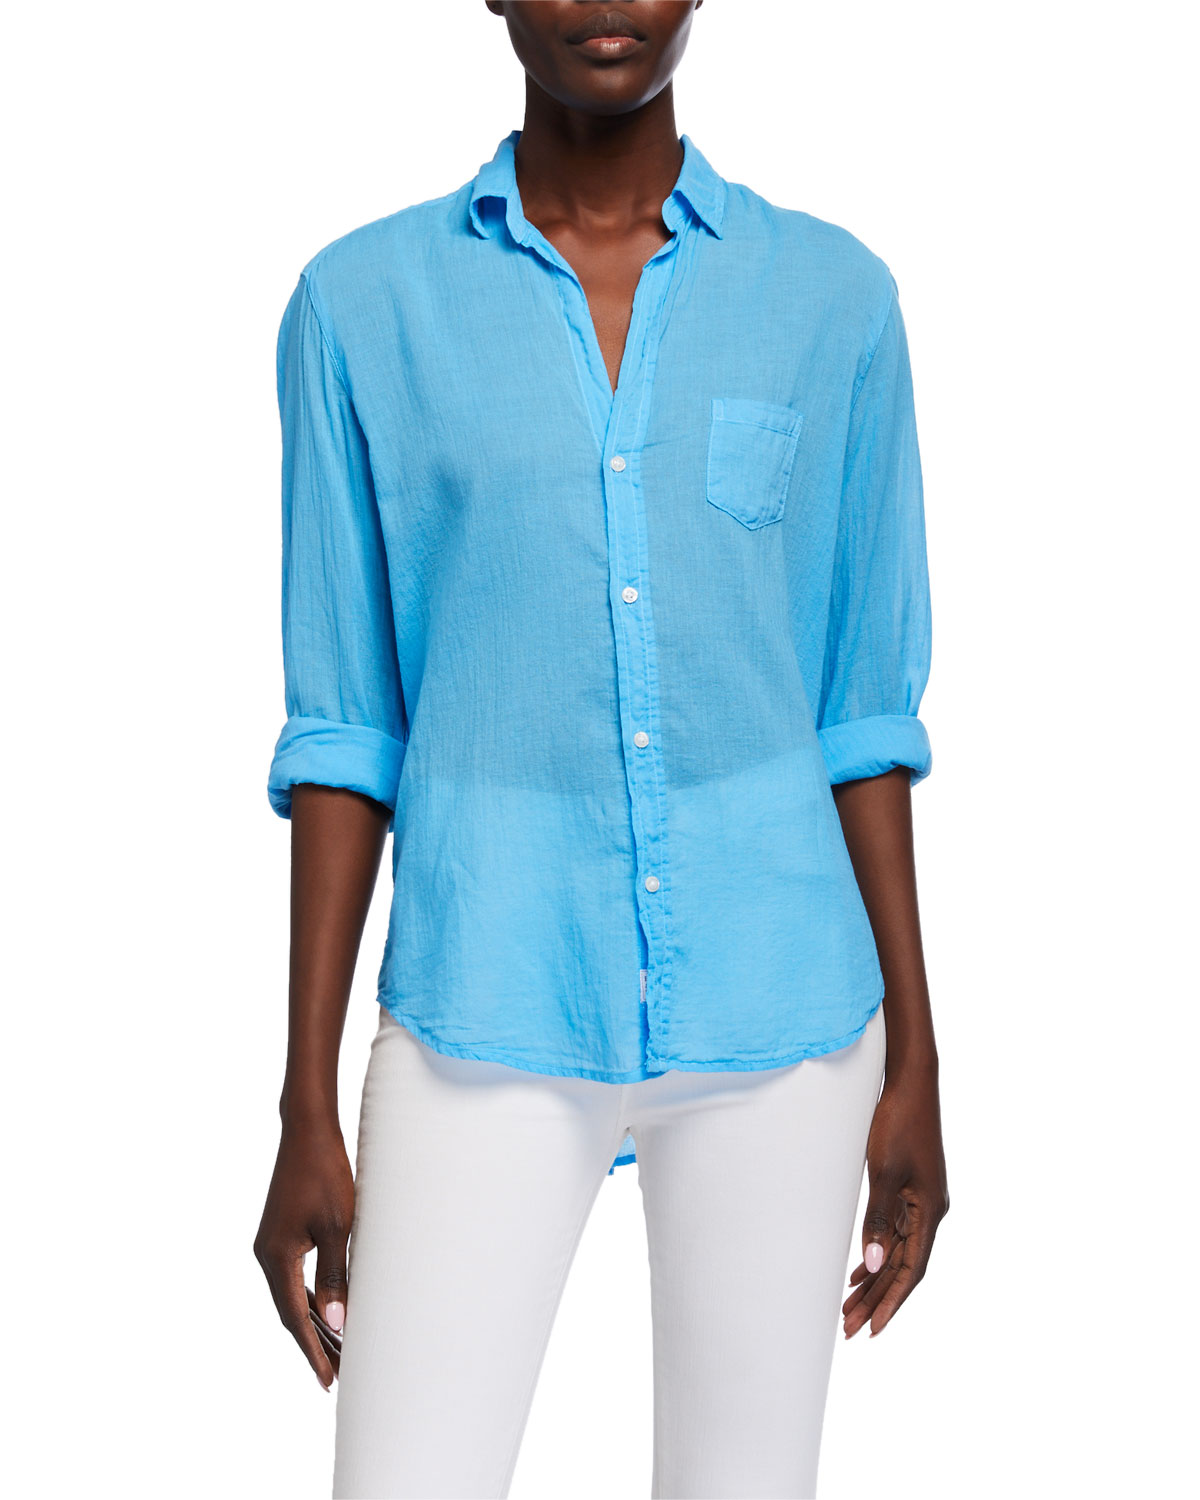 Frank & Eileen Eileen Long-Sleeve Button-Down Shirt